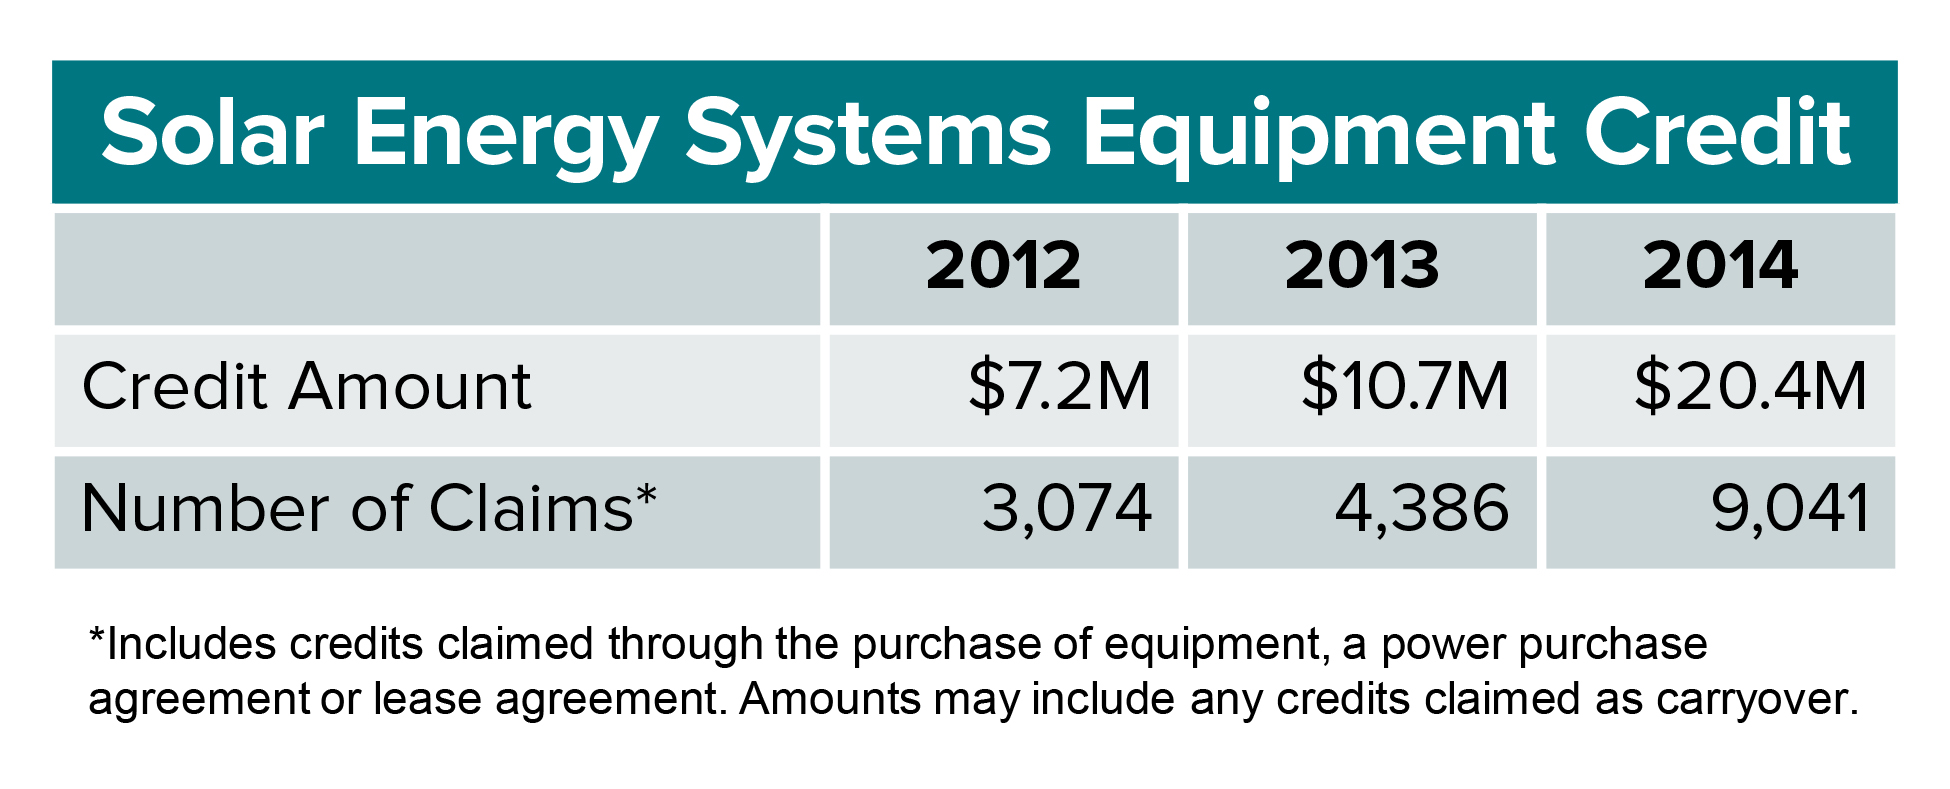 Solar Energy Systems Equipment Credit